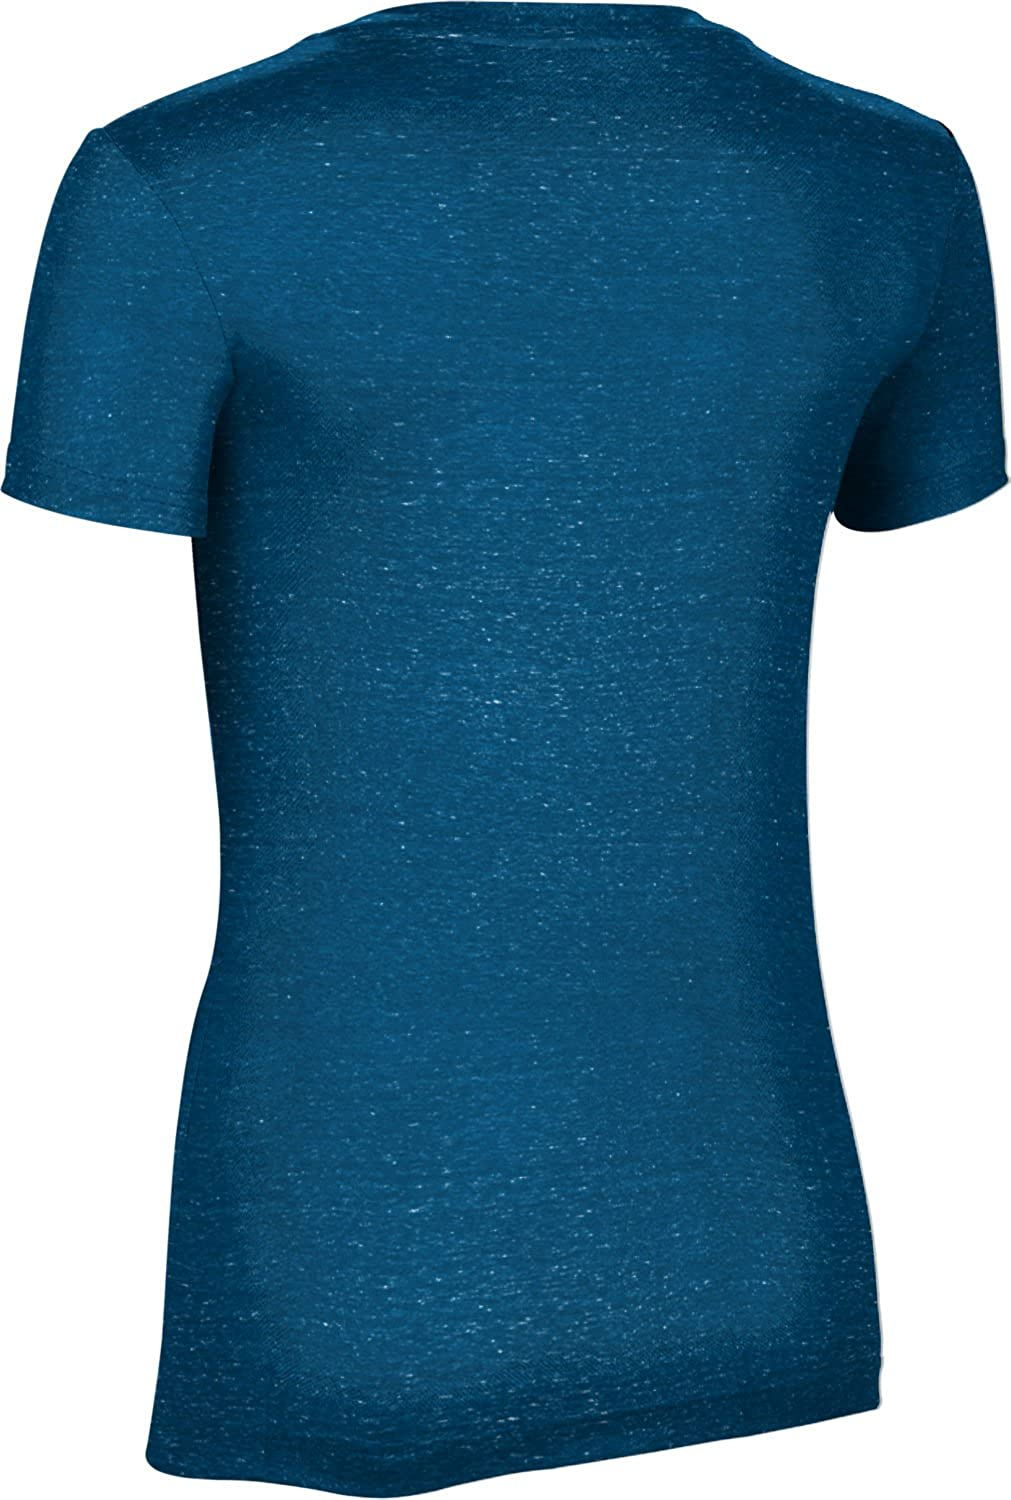 ProSphere Women's Andrews AFB Military Heather Tech Tee